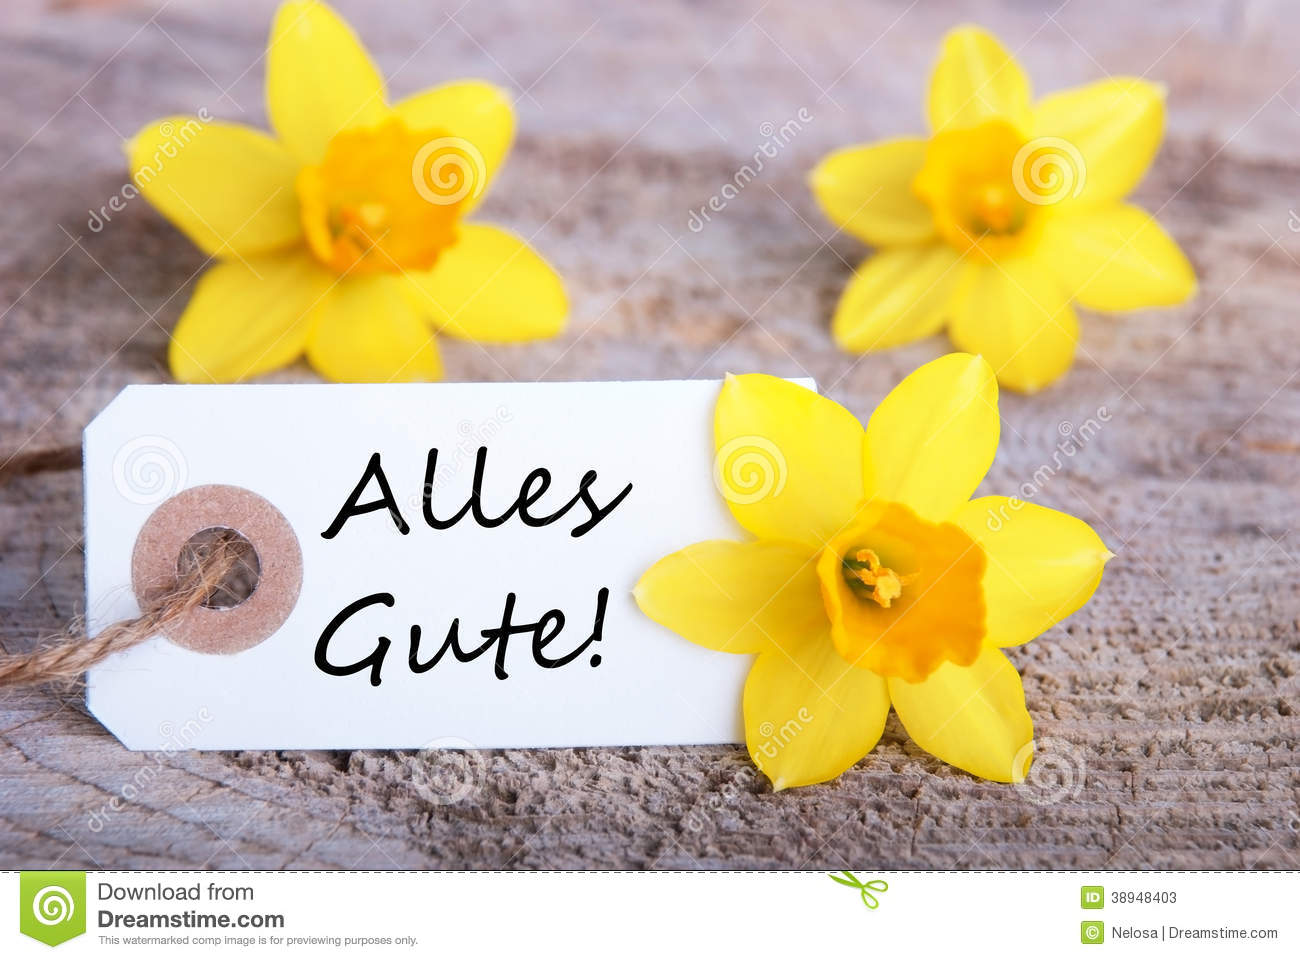 Alles gute clipart library Label With Alles Gute Stock Photo - Image: 38948403 clipart library